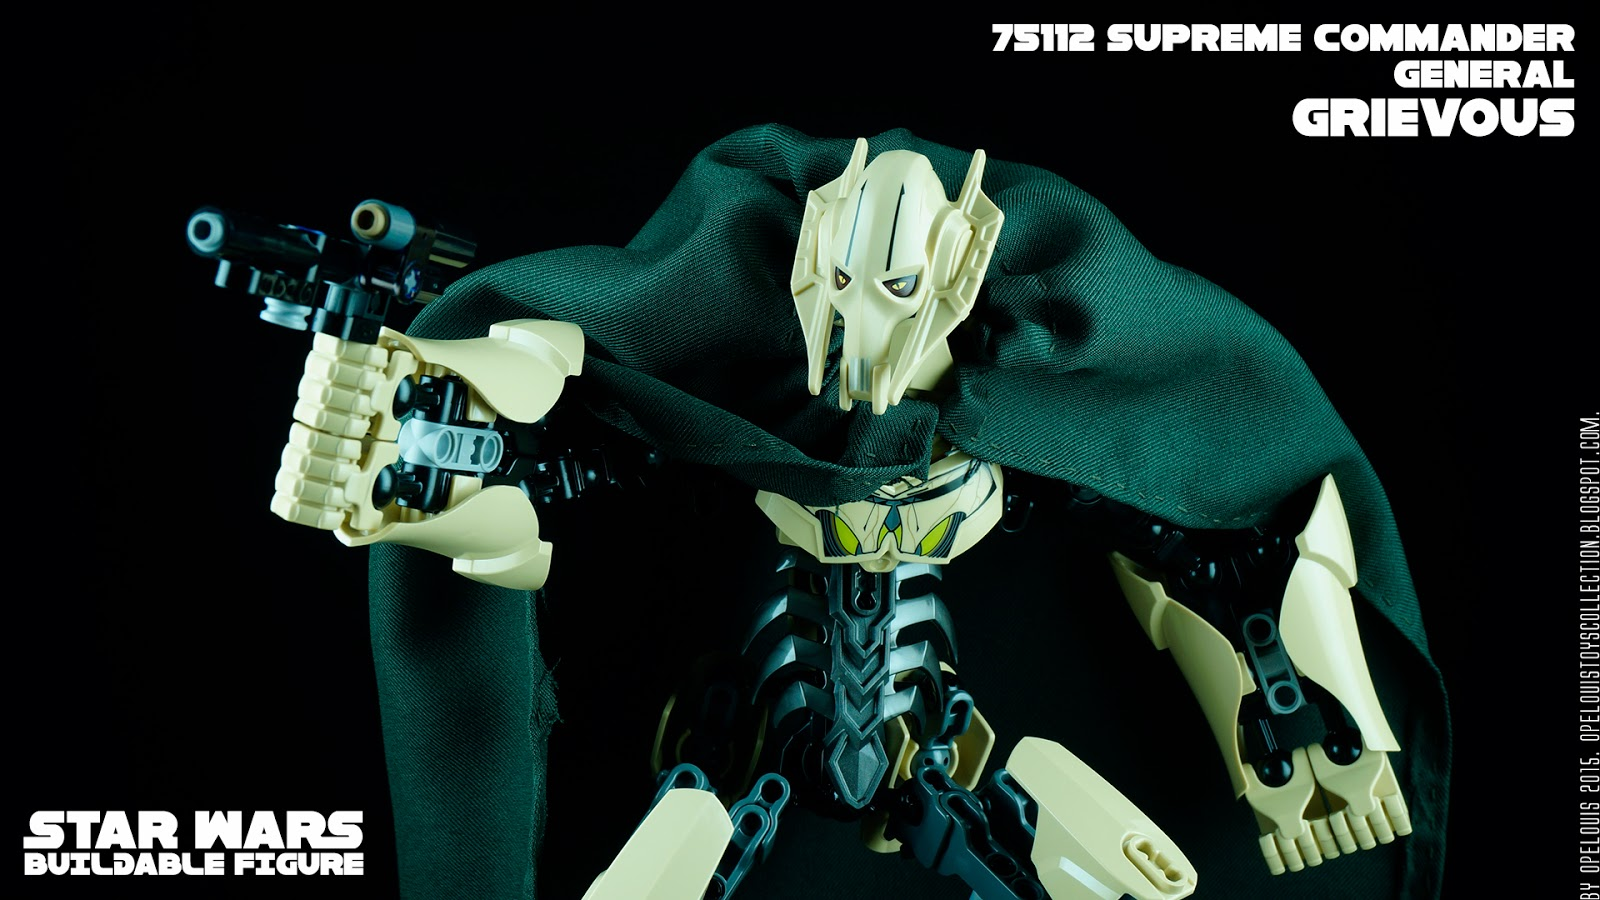 Star Wars General Grievous Toys : Opelouis s toys collection lego star wars buildable